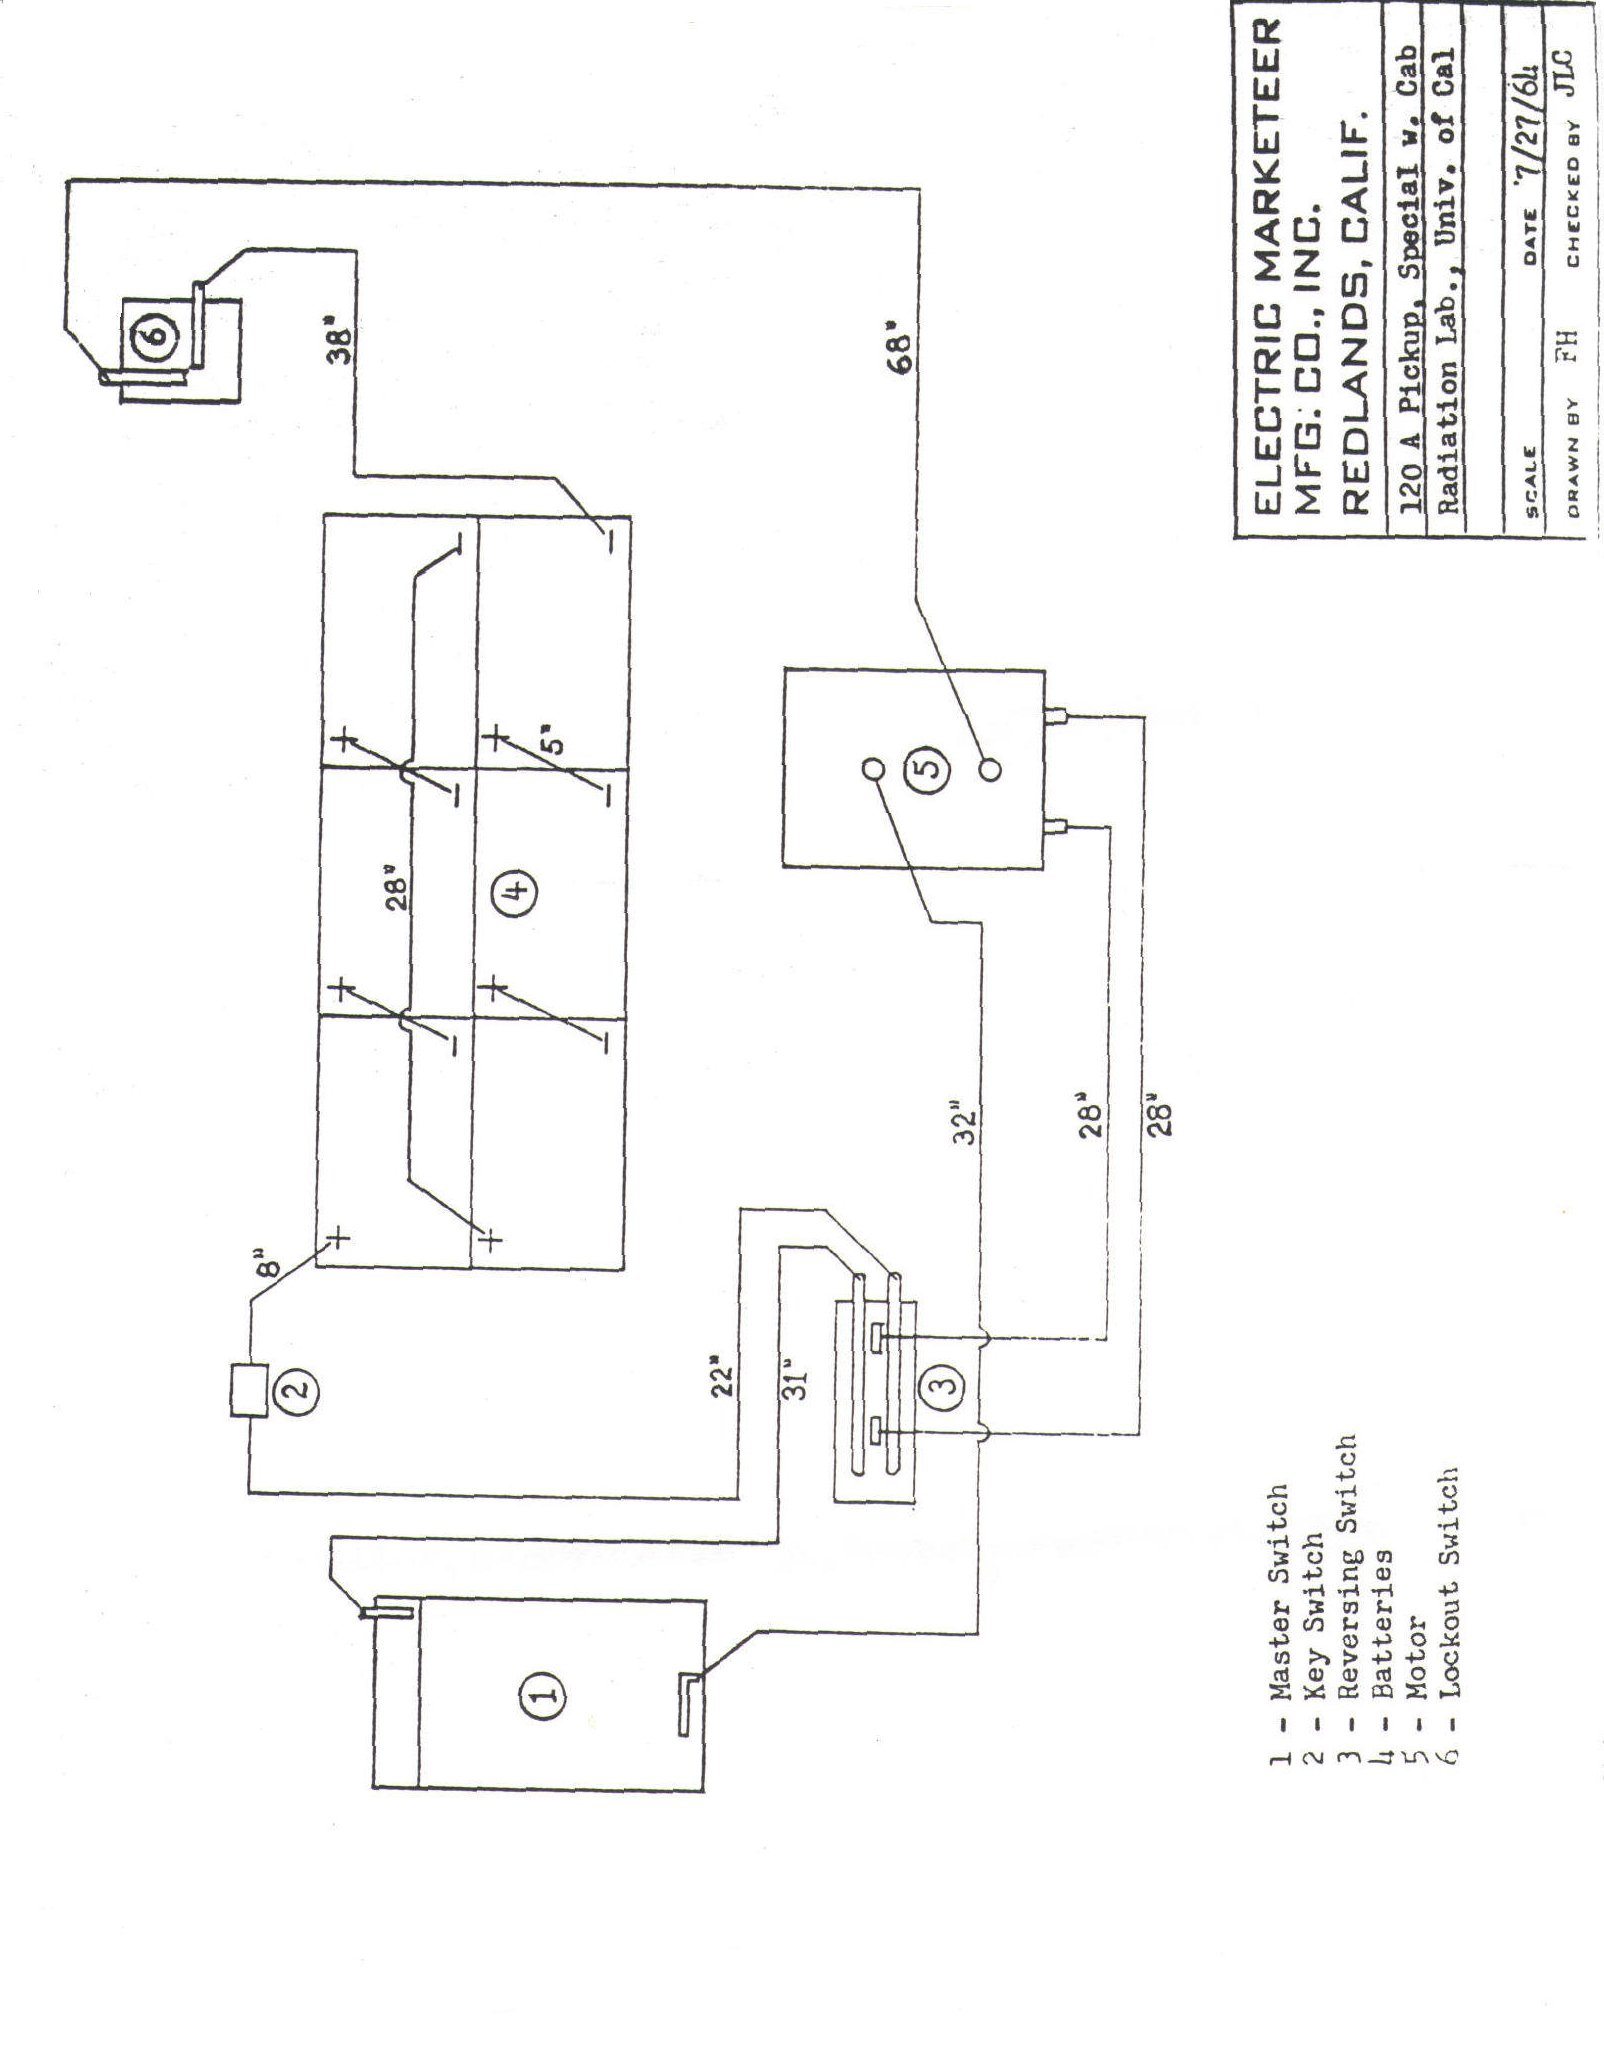 hight resolution of ezgo golf cart wiring diagram e z go pds